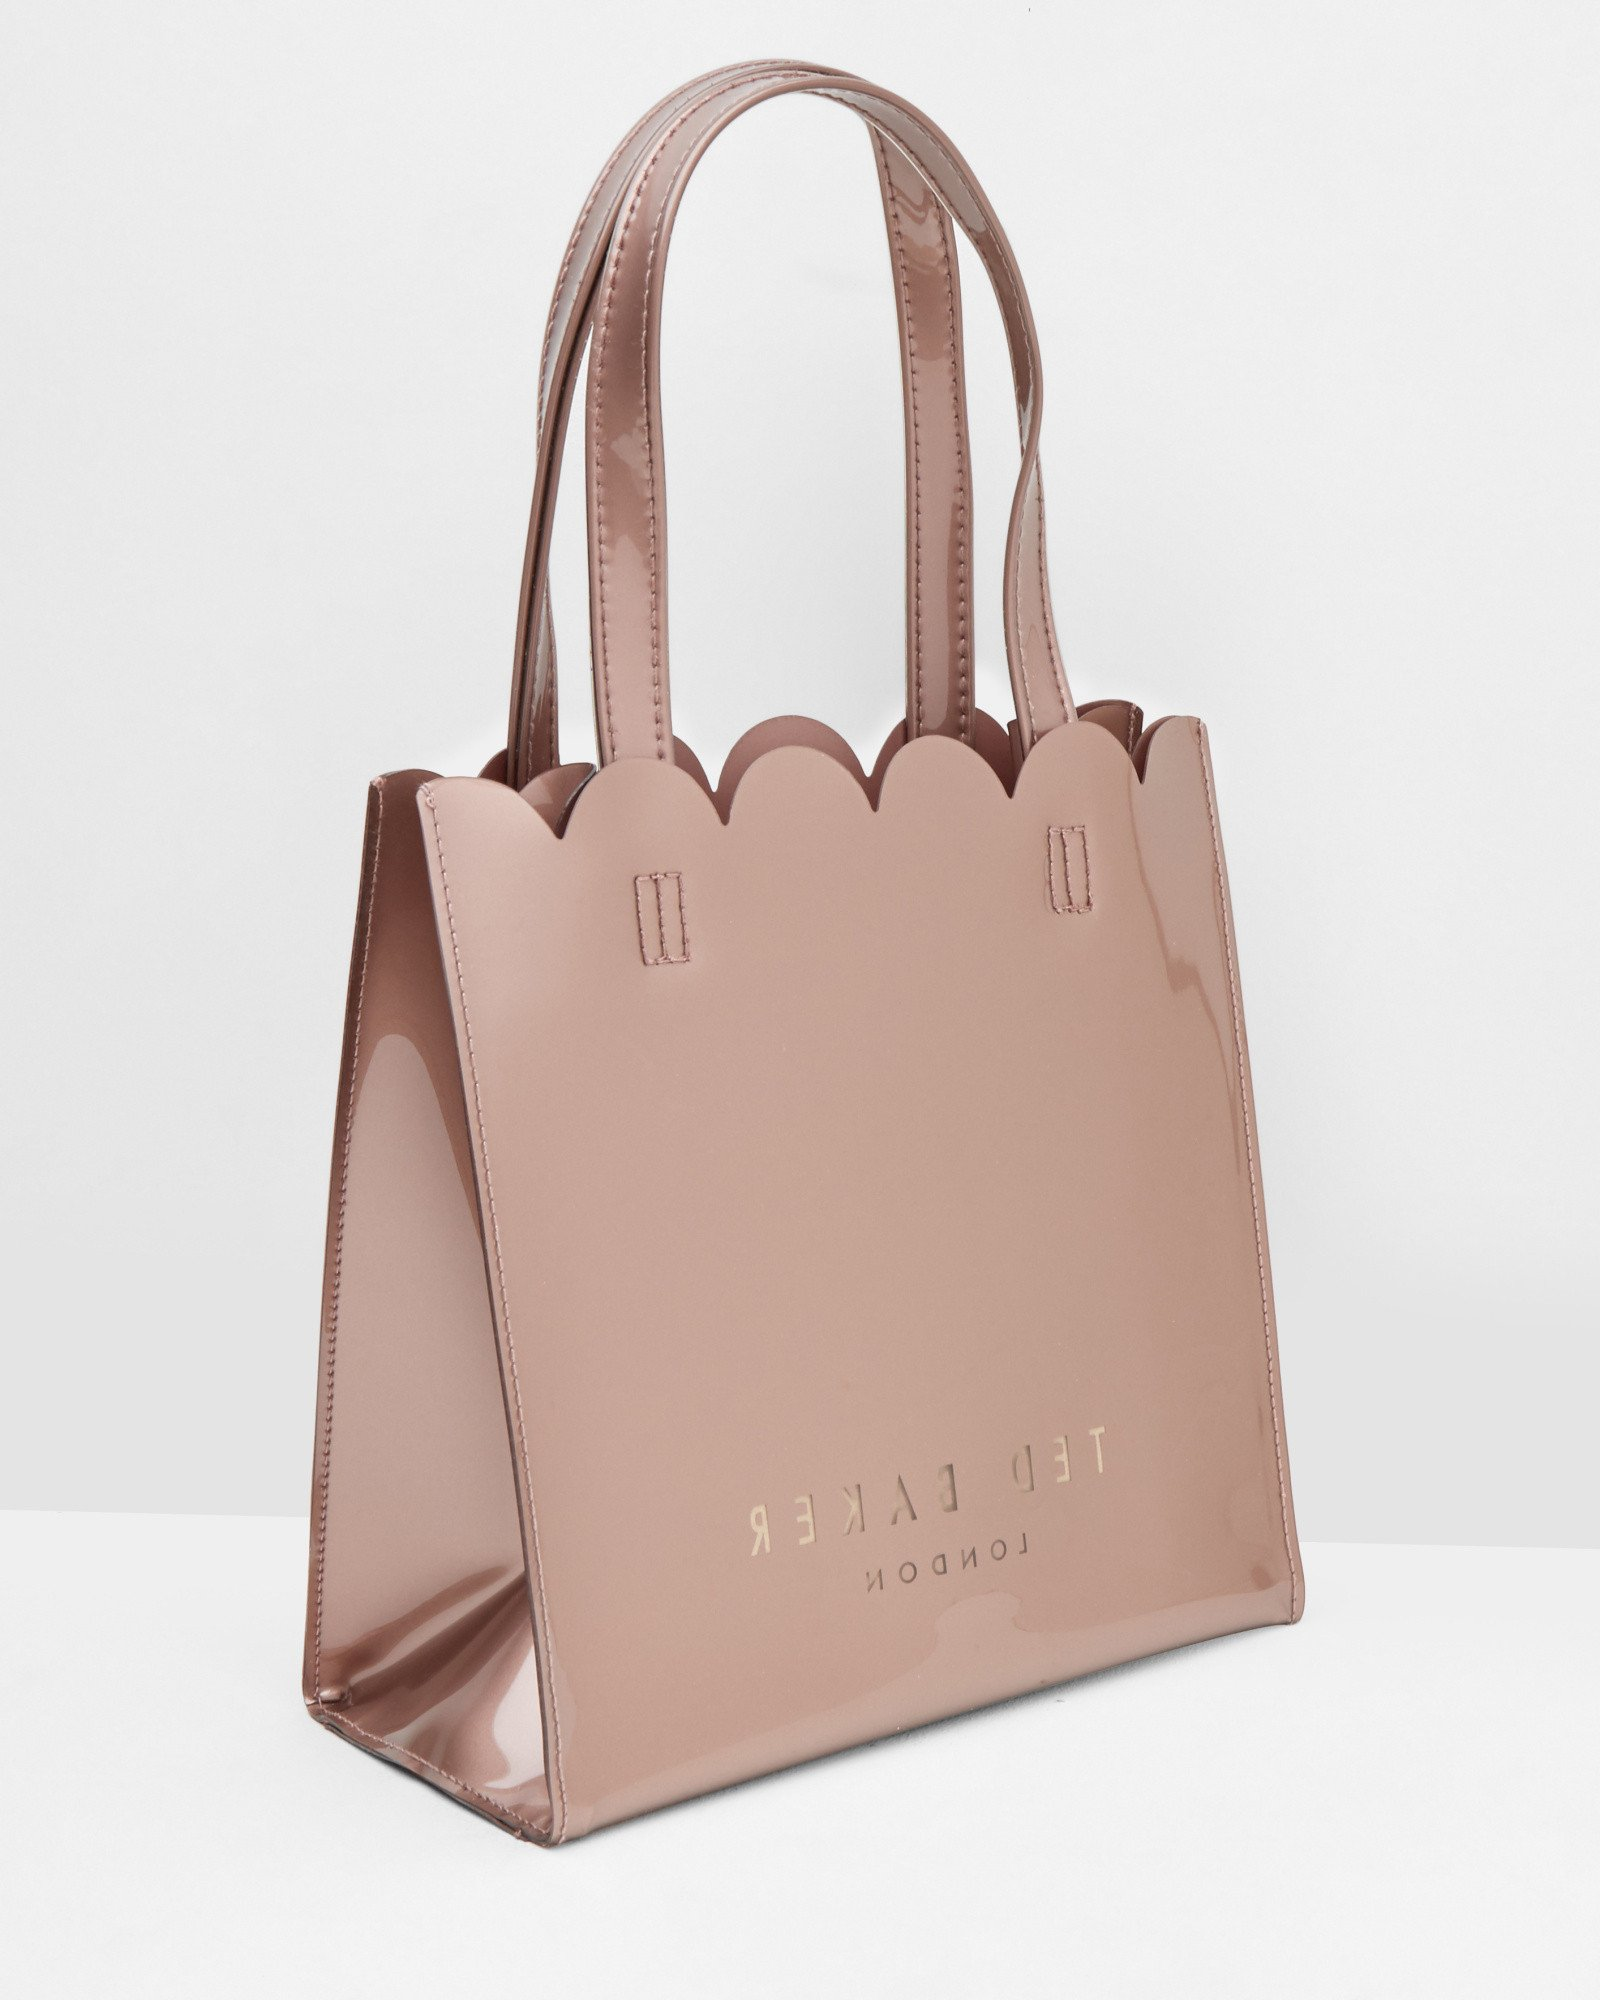 2b1bb00d8a Ted Baker Scallop Edge Large Shopper Bag in Pink - Lyst